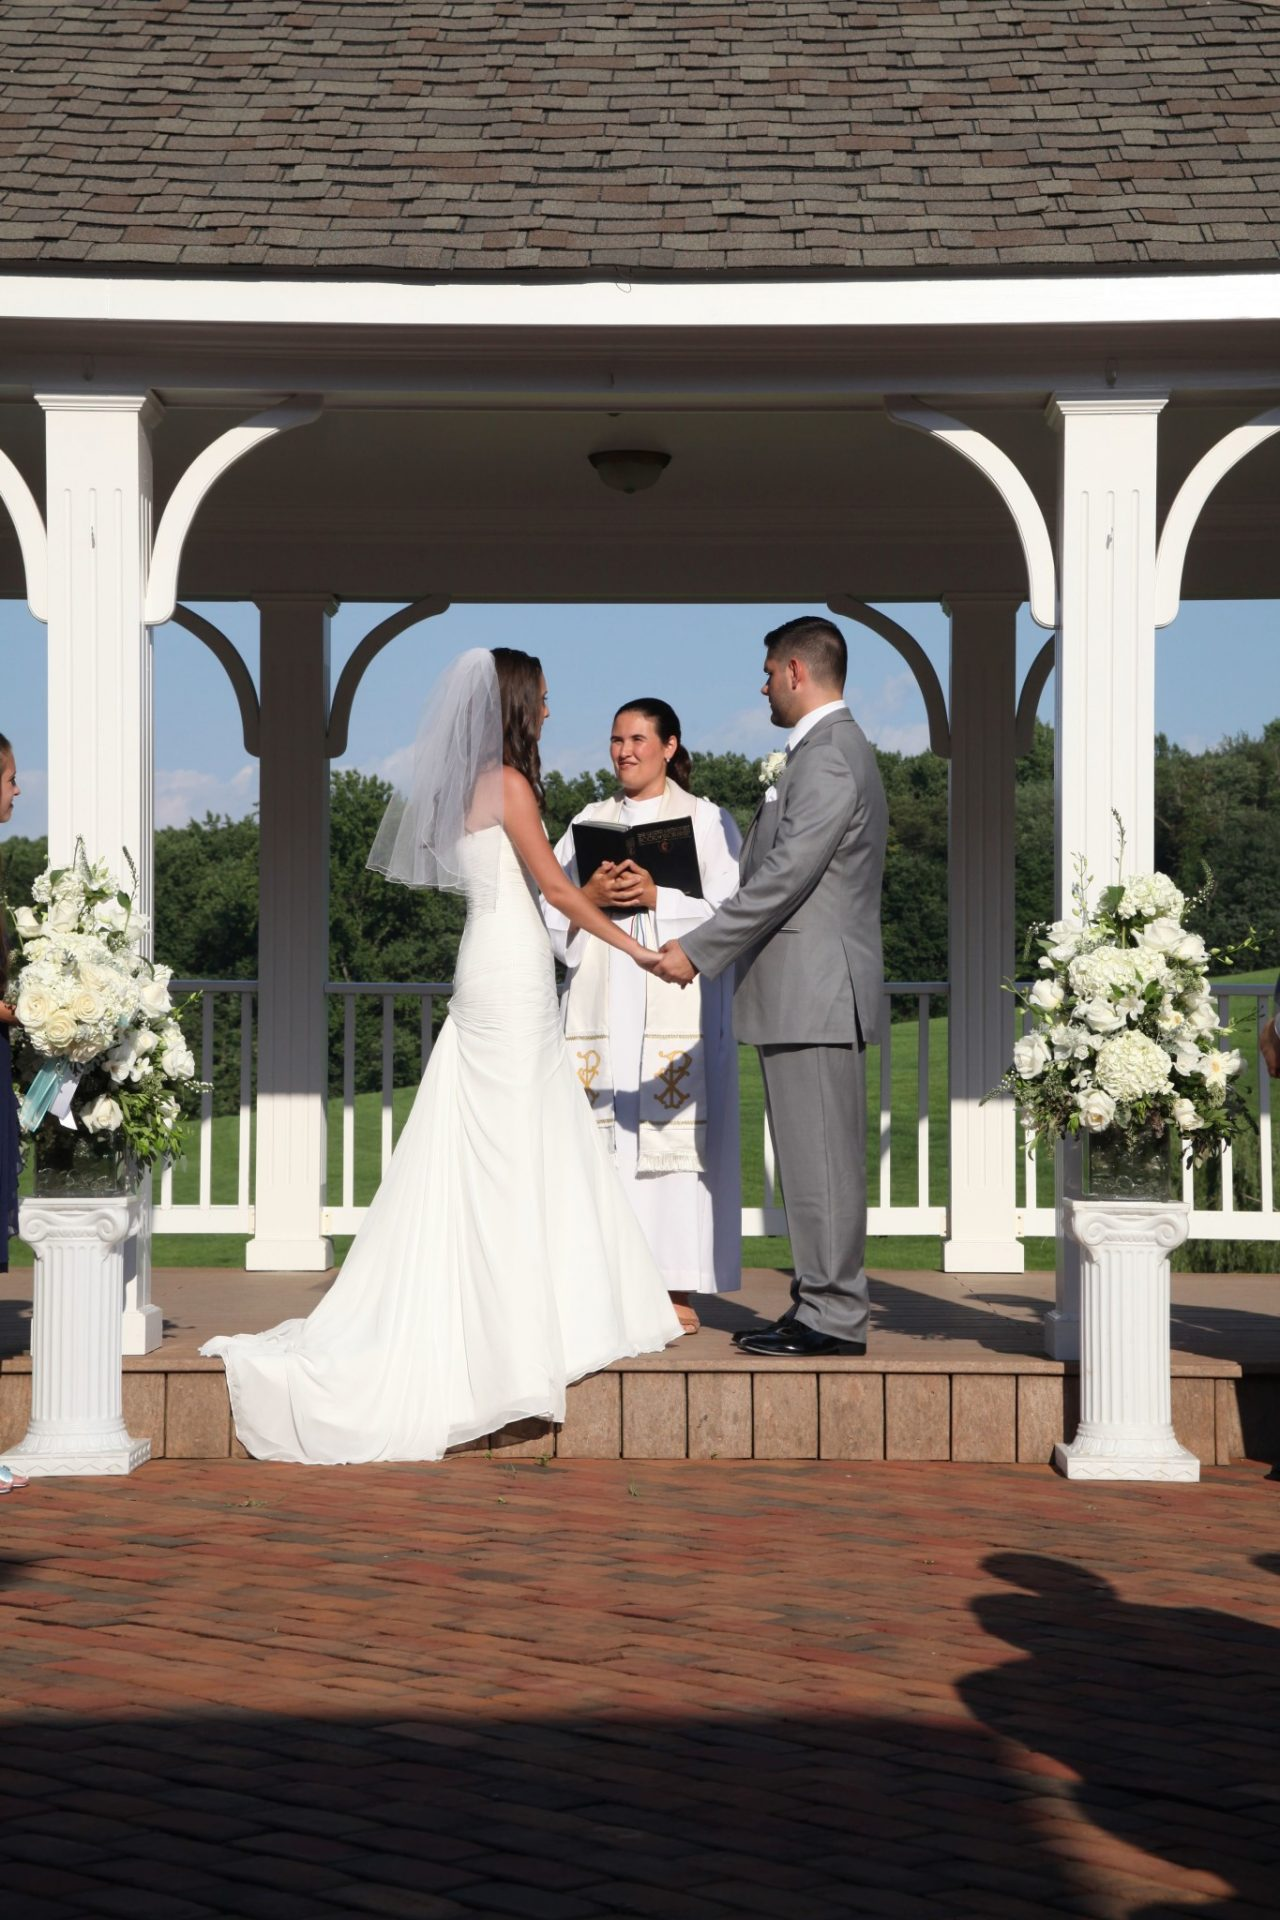 Close up of bride and groom on pavilion during outdoor wedding ceremony